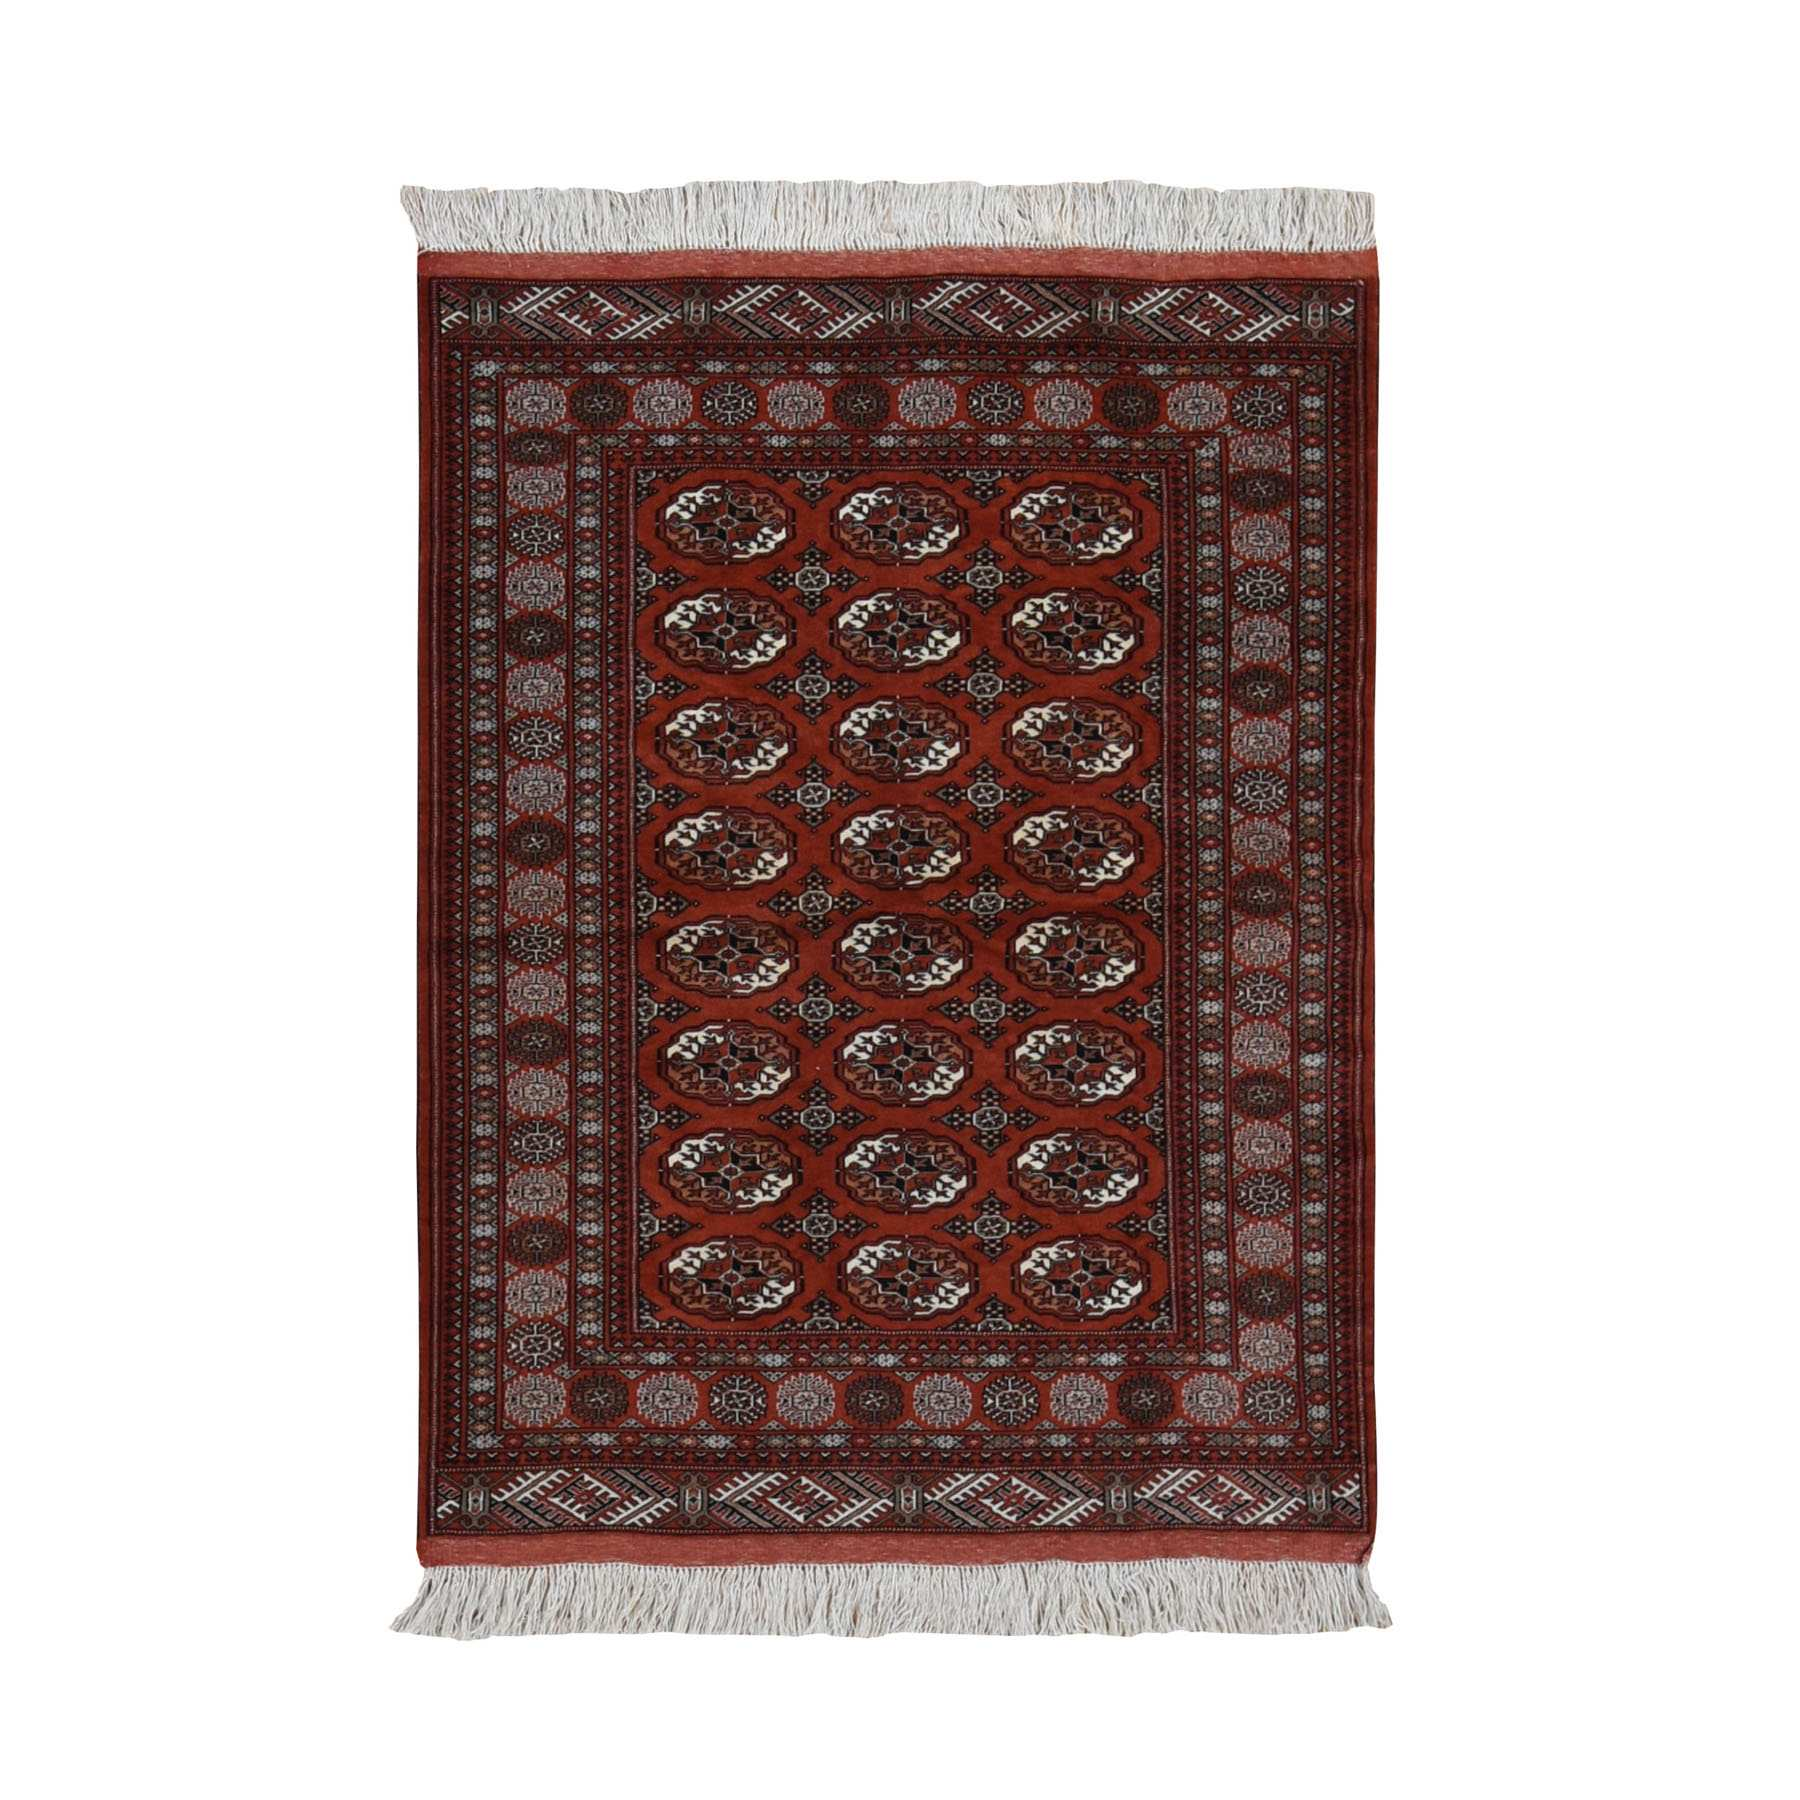 "4'4""x5'7"" Rust Red New Persian Turkoman Bokara Hi KPSI Pure Wool Hand Knotted Oriental Rug"